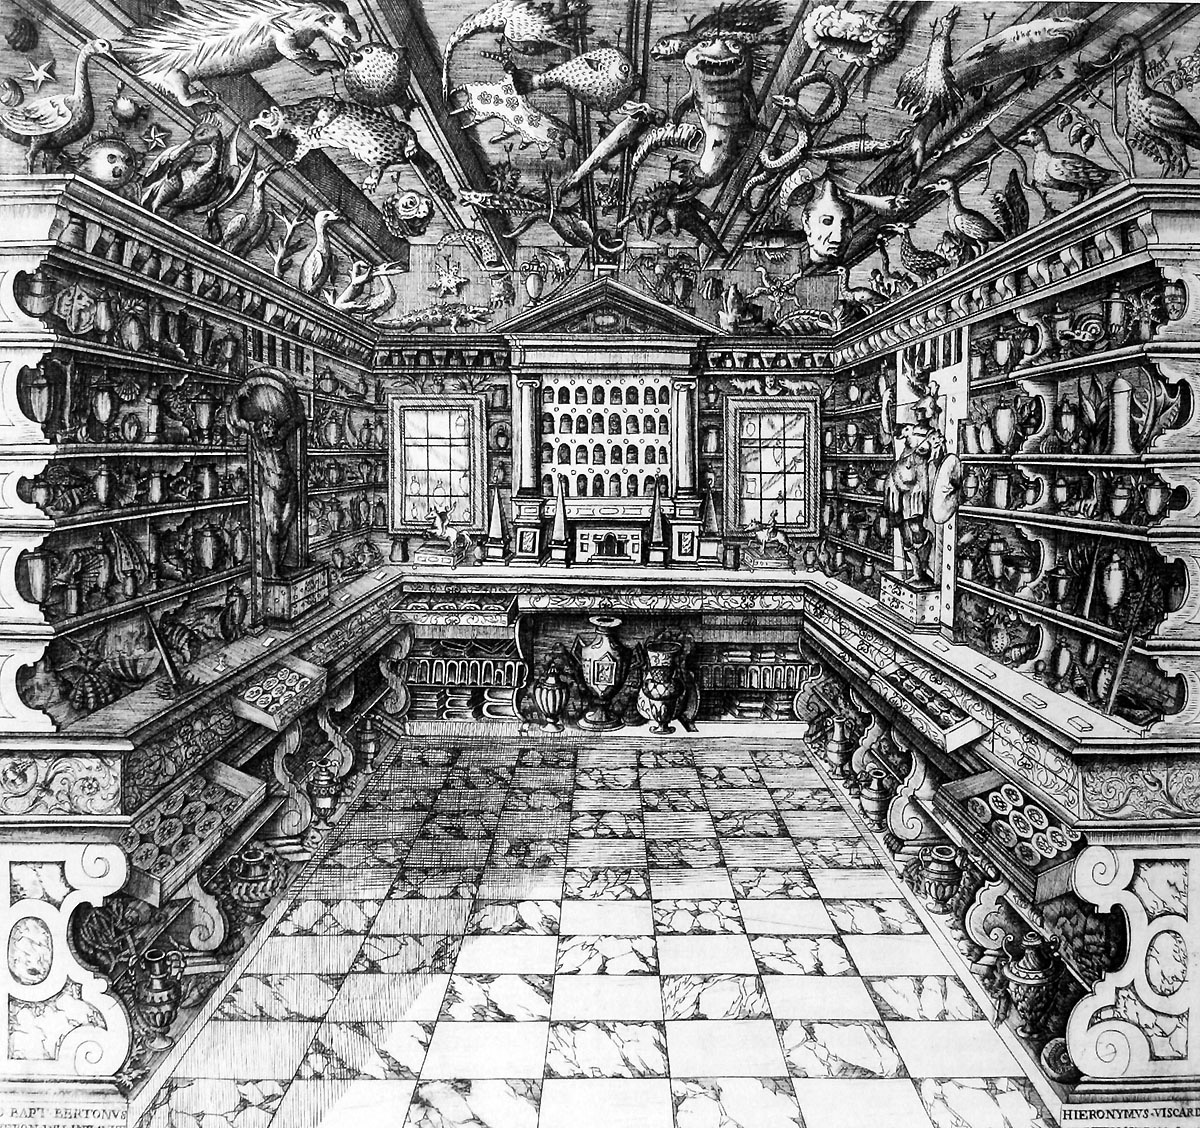 Francesco Calzolari's Cabinet of curiosities